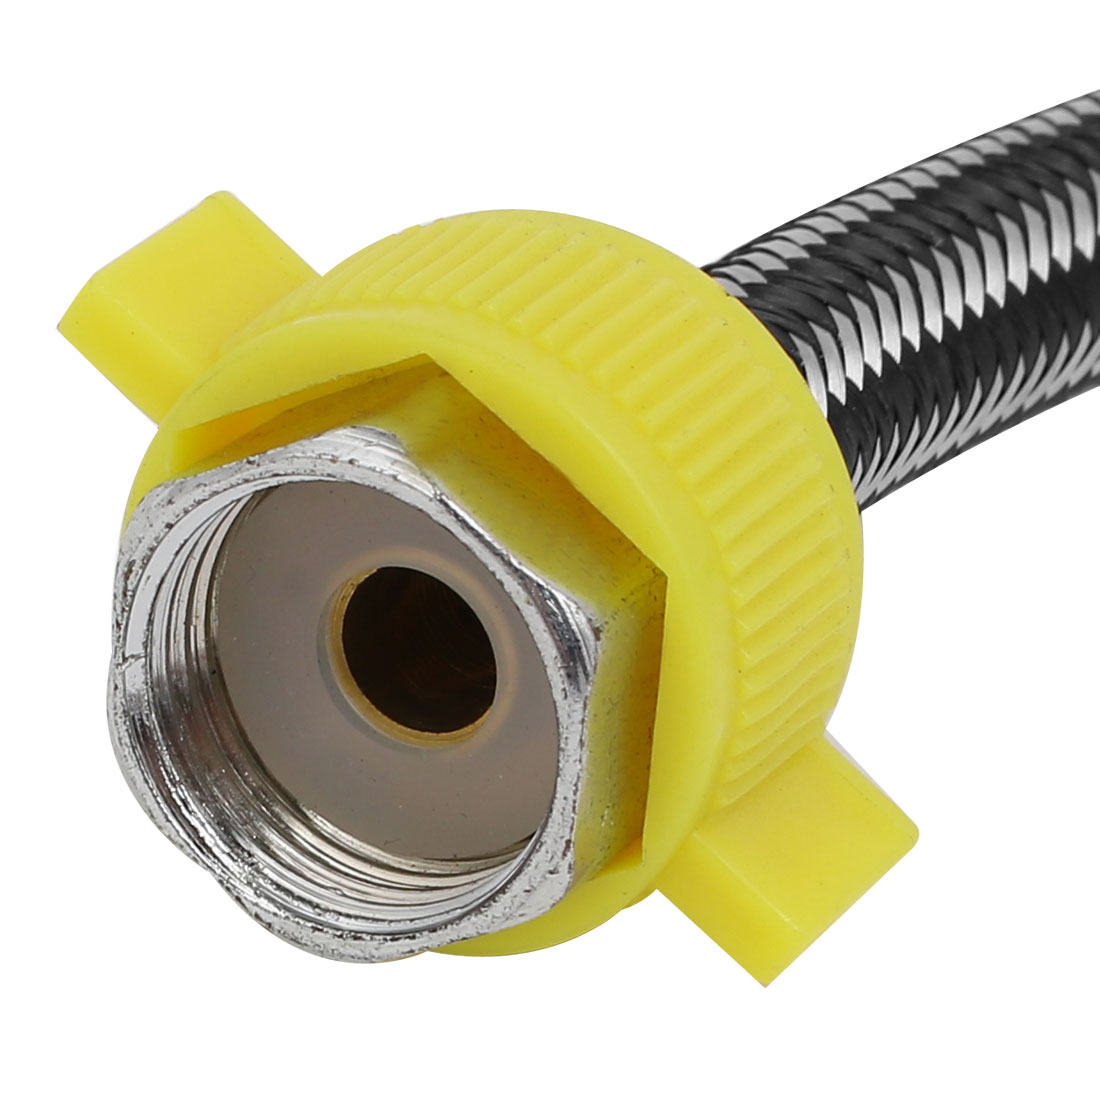 1/2PT Female Thread to 1/2PT Female Thread Toilet Connector 300mm Length - image 1 of 3